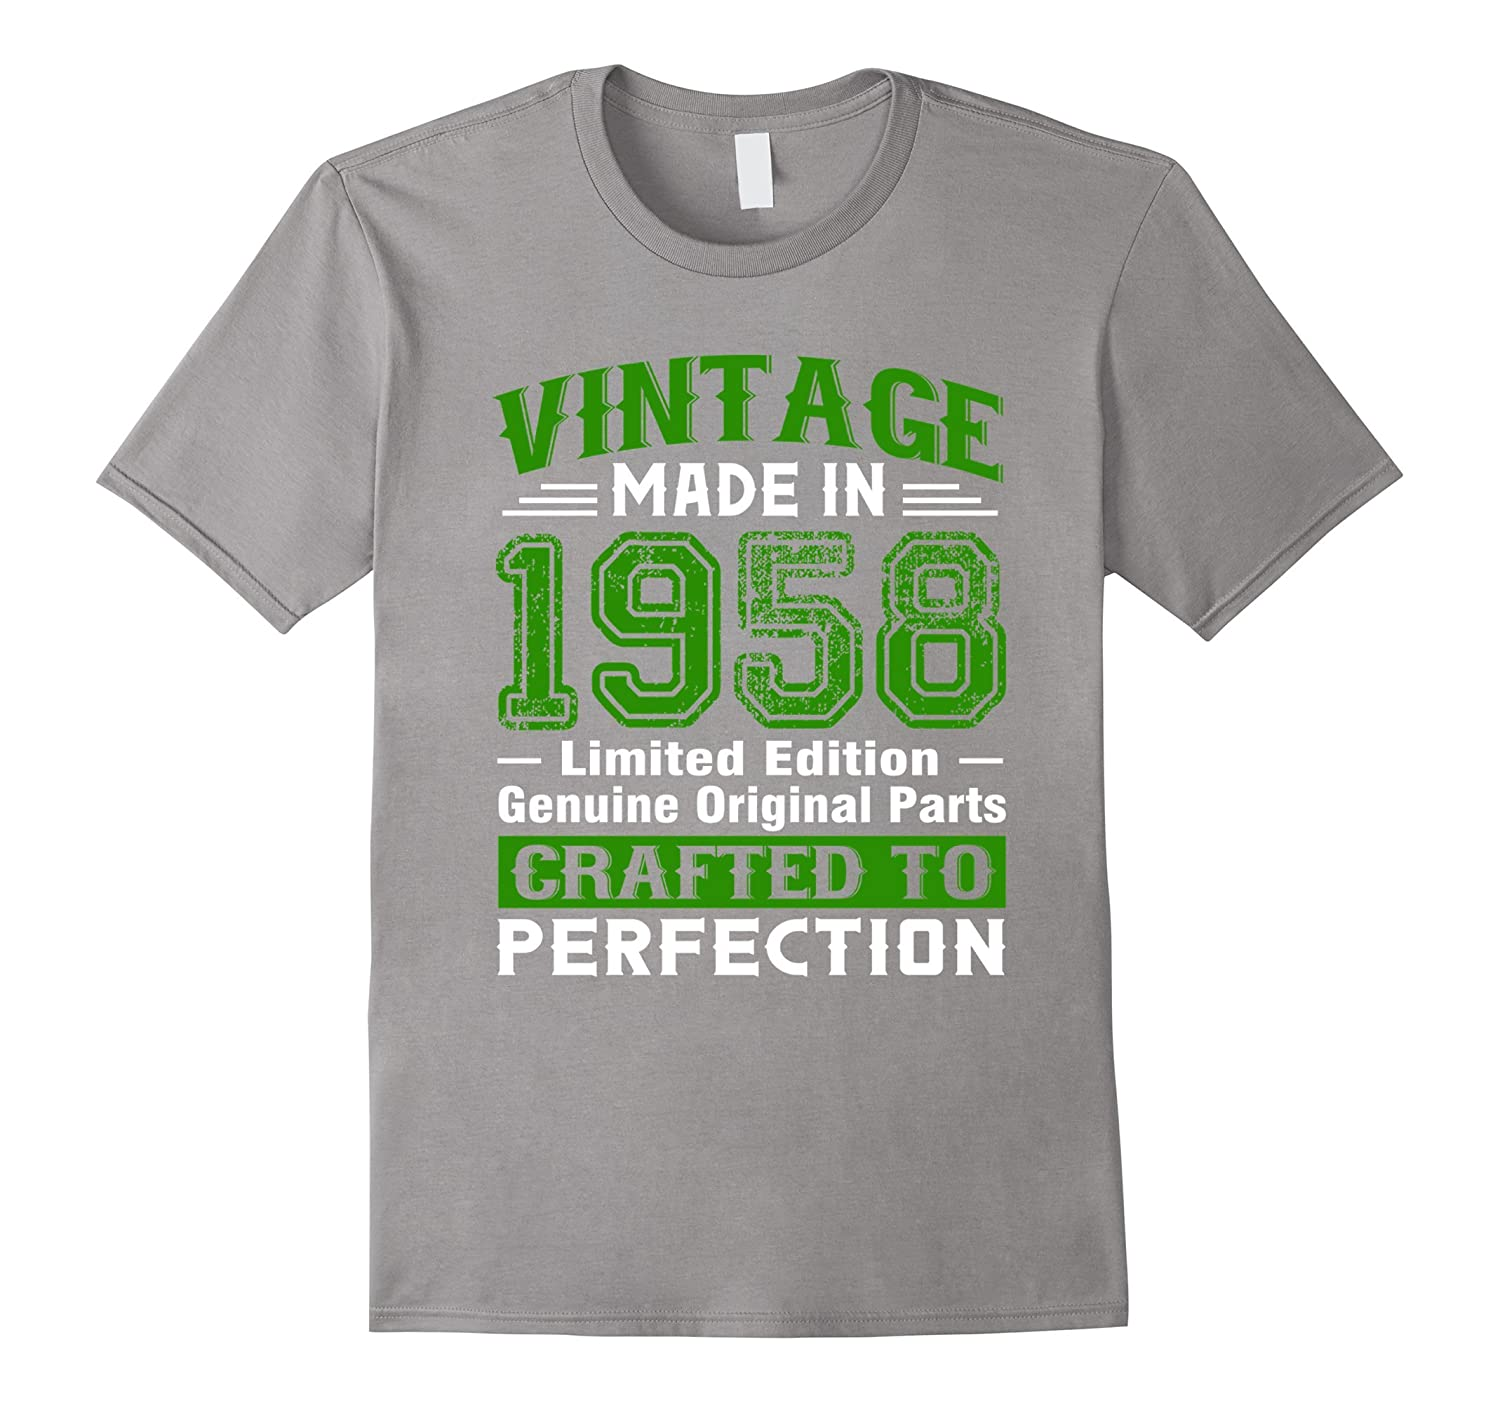 Vintage Made In 1958 Crafted To Perfection 59 Yrs Years Old